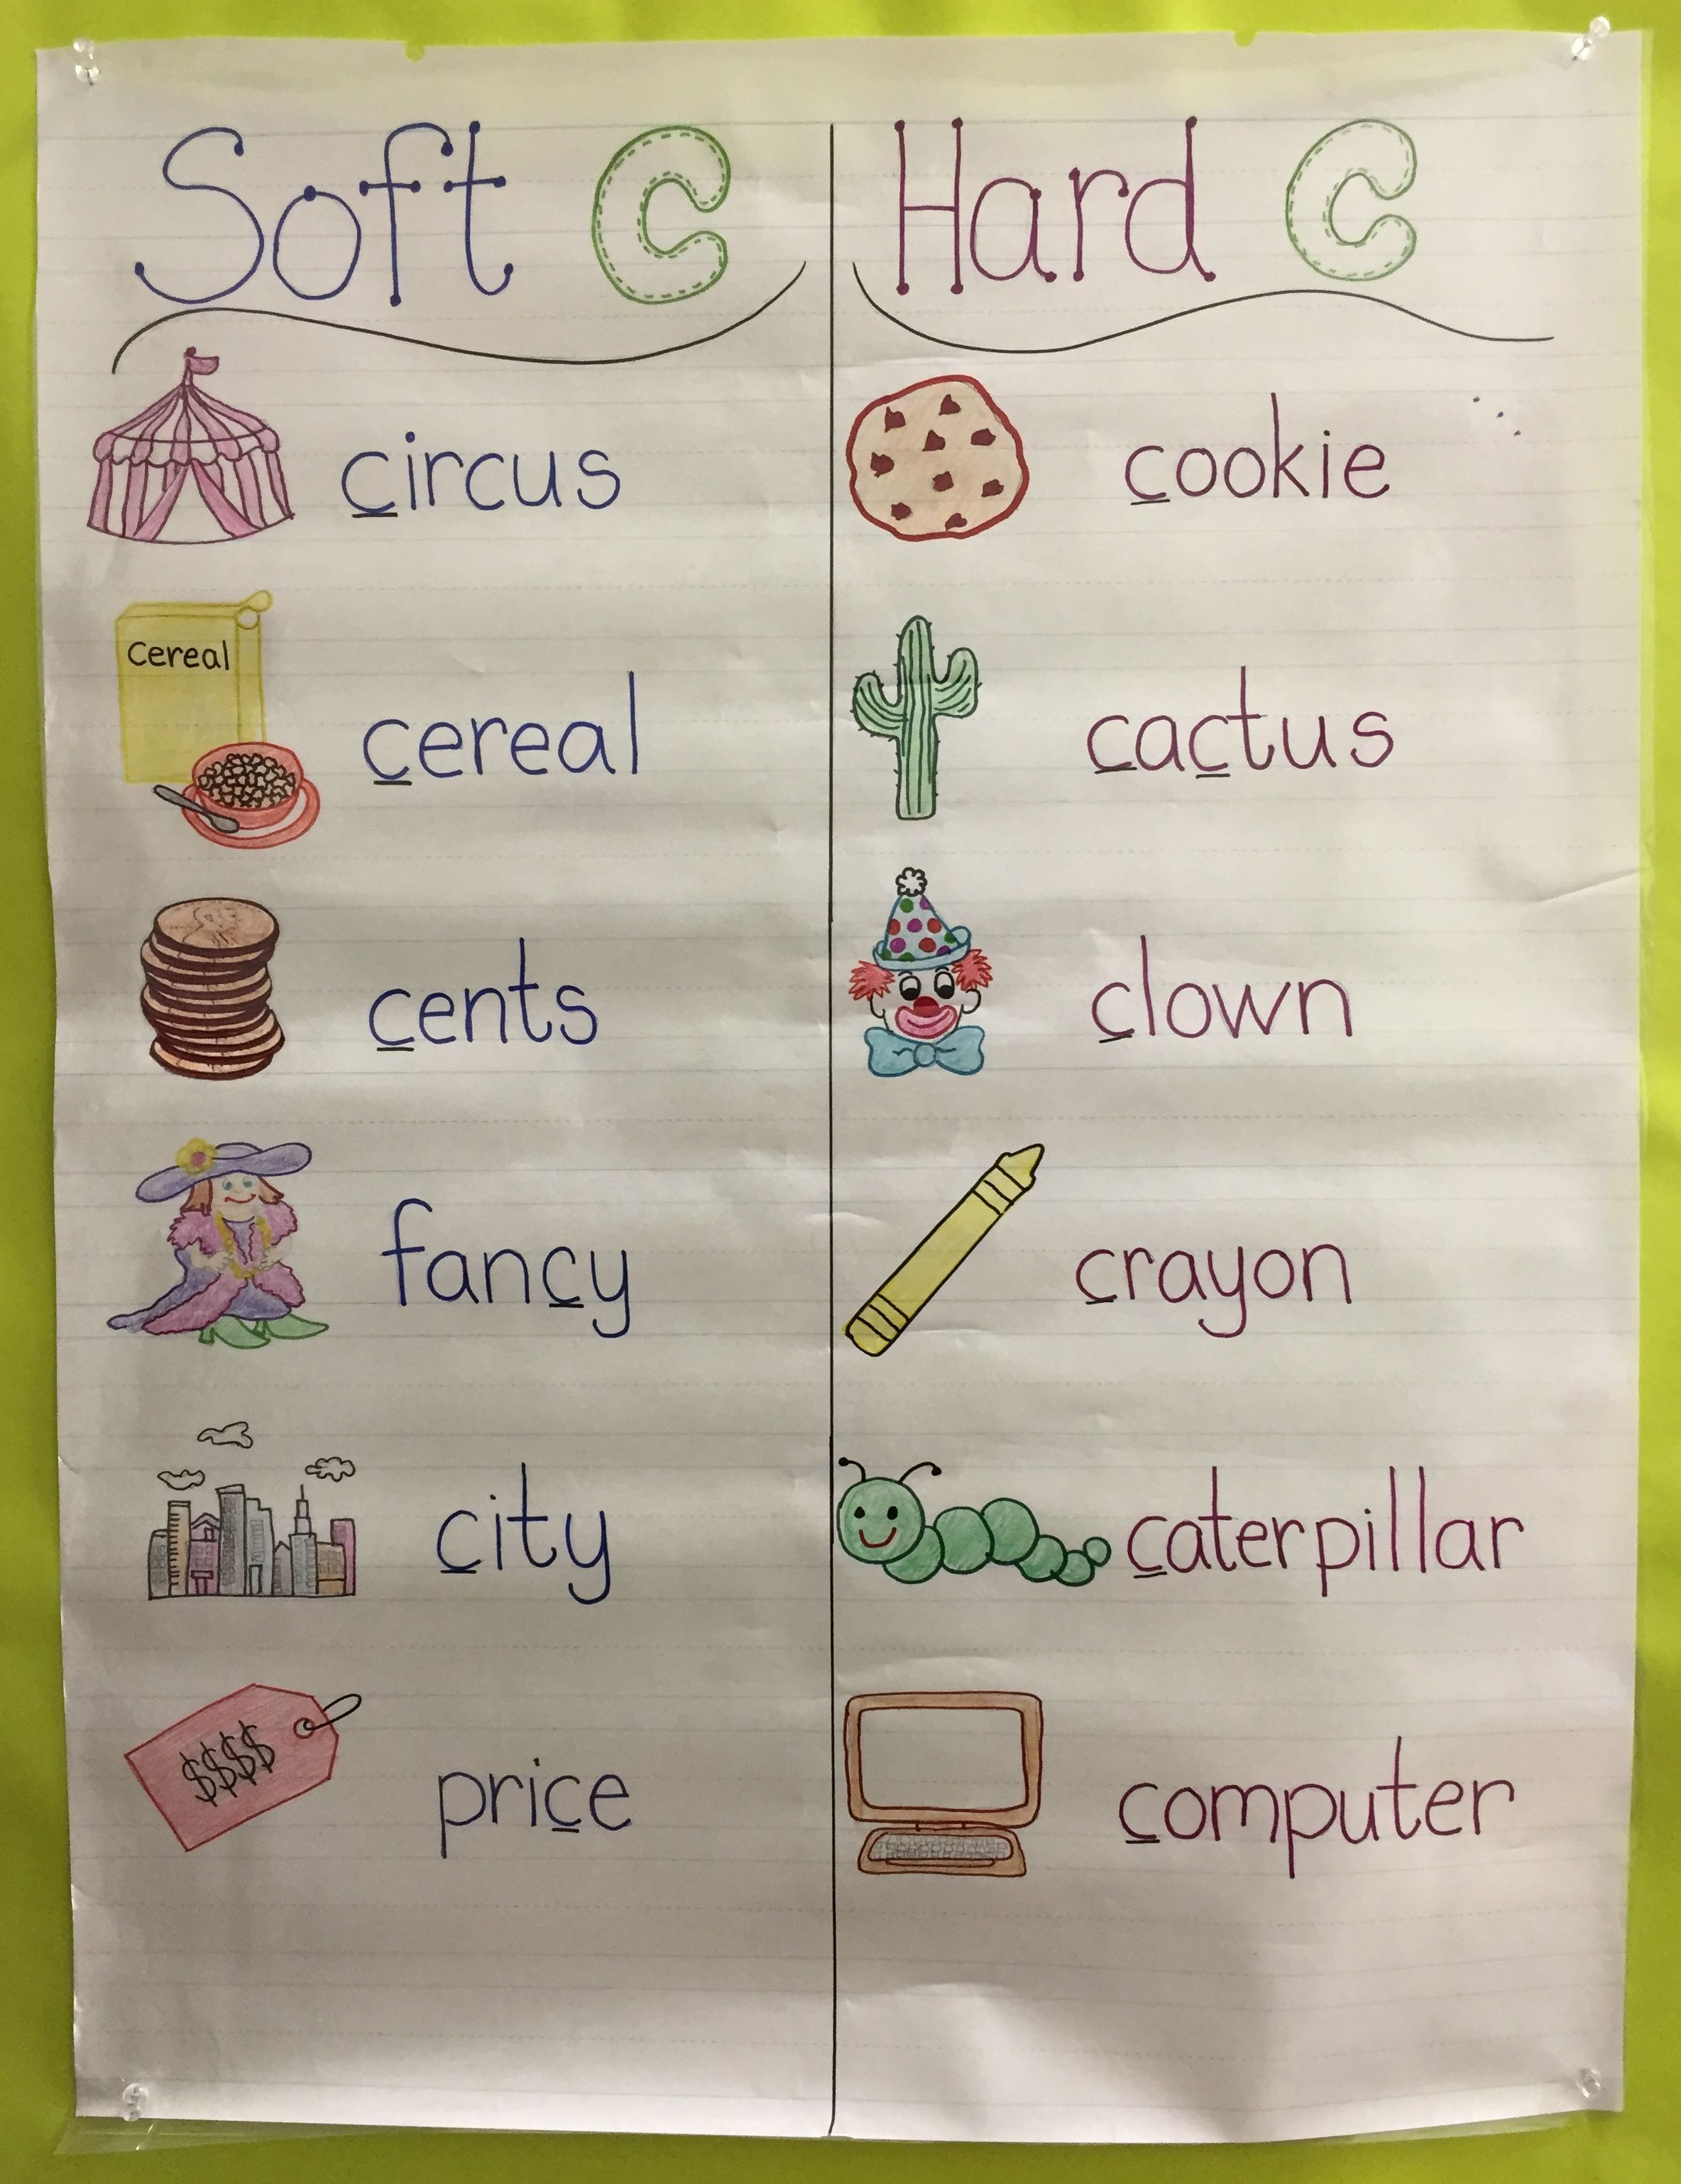 small resolution of Soft and hard \c\ anchor chart   Anchor charts